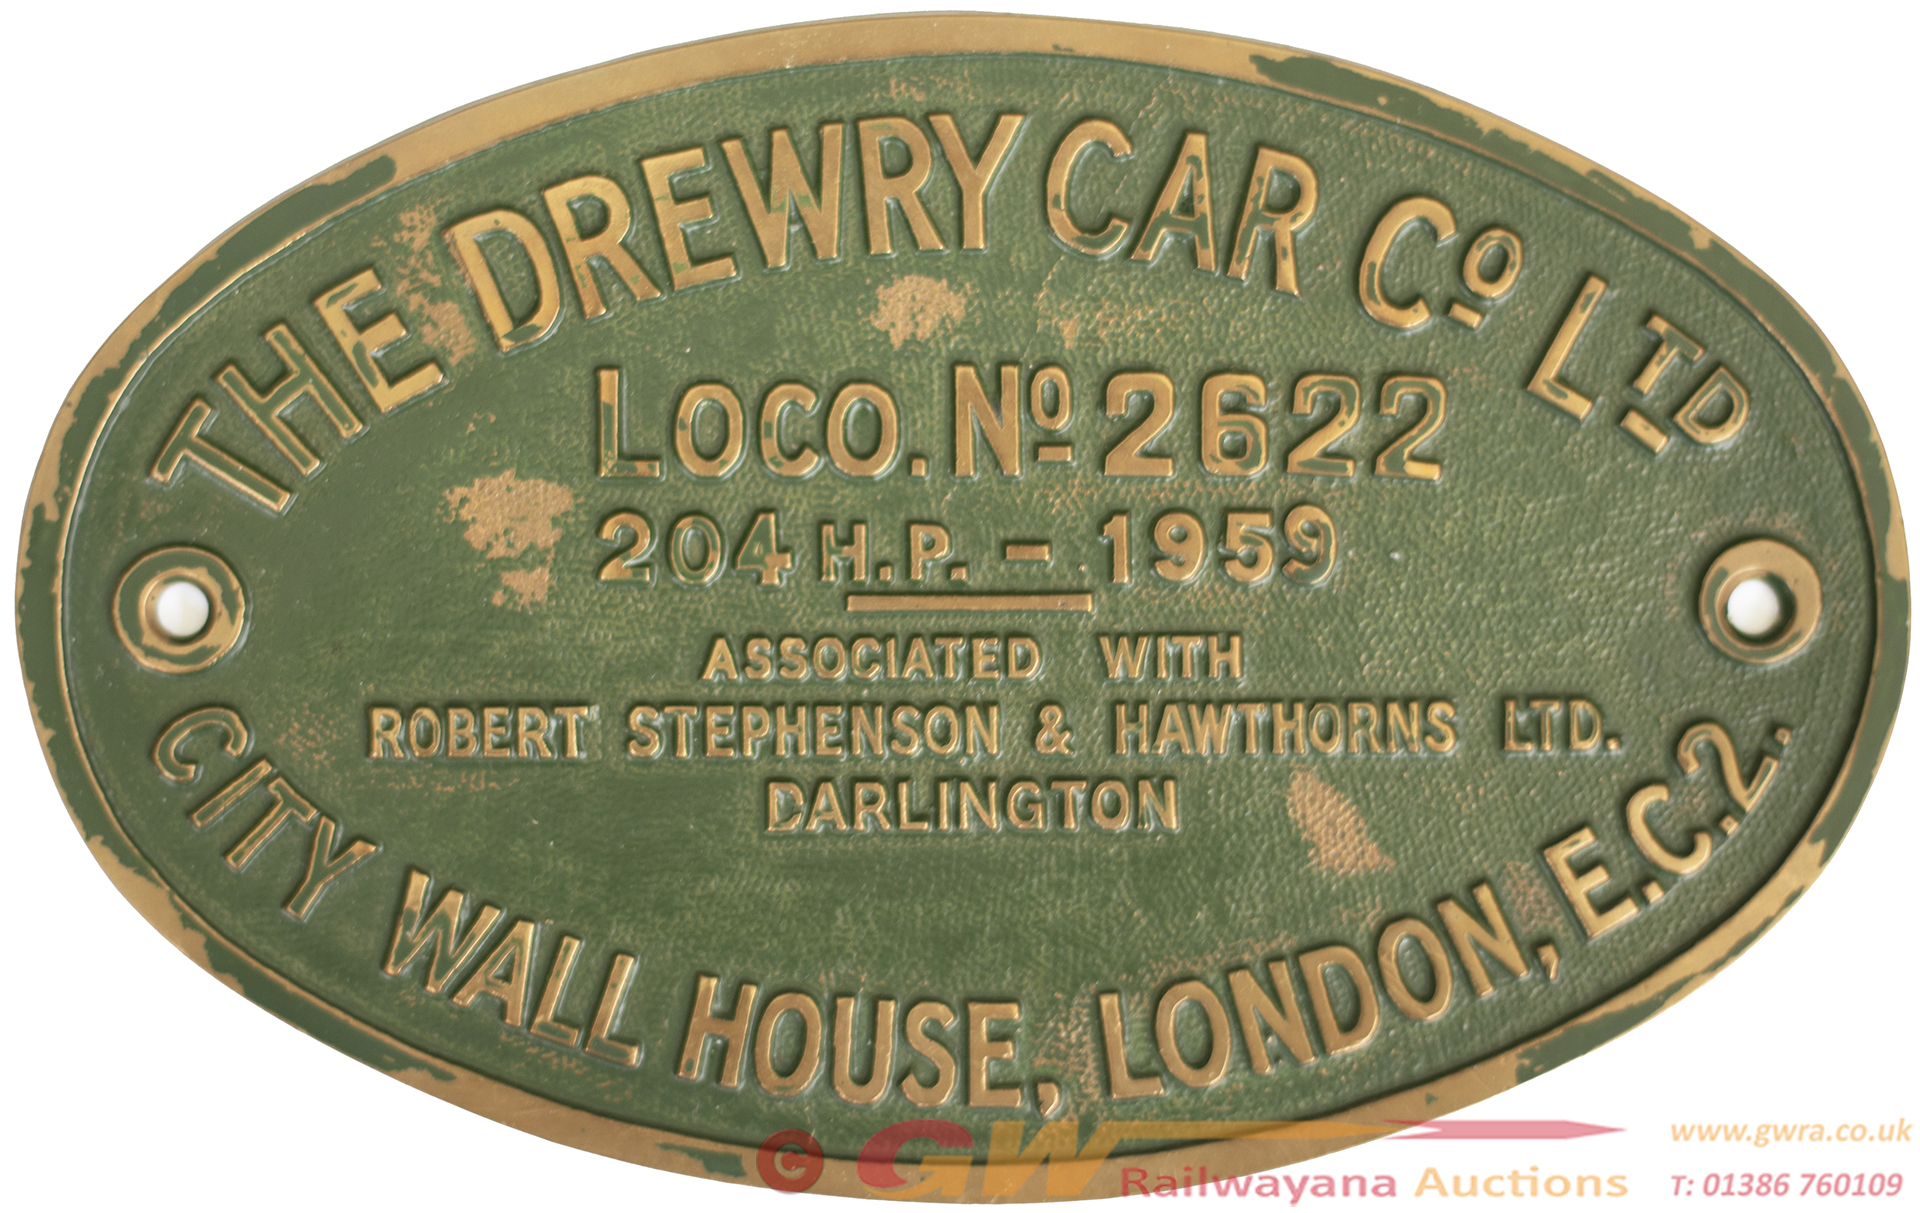 Worksplate THE DREWRY CAR CO LTD CITY WALL HOUSE